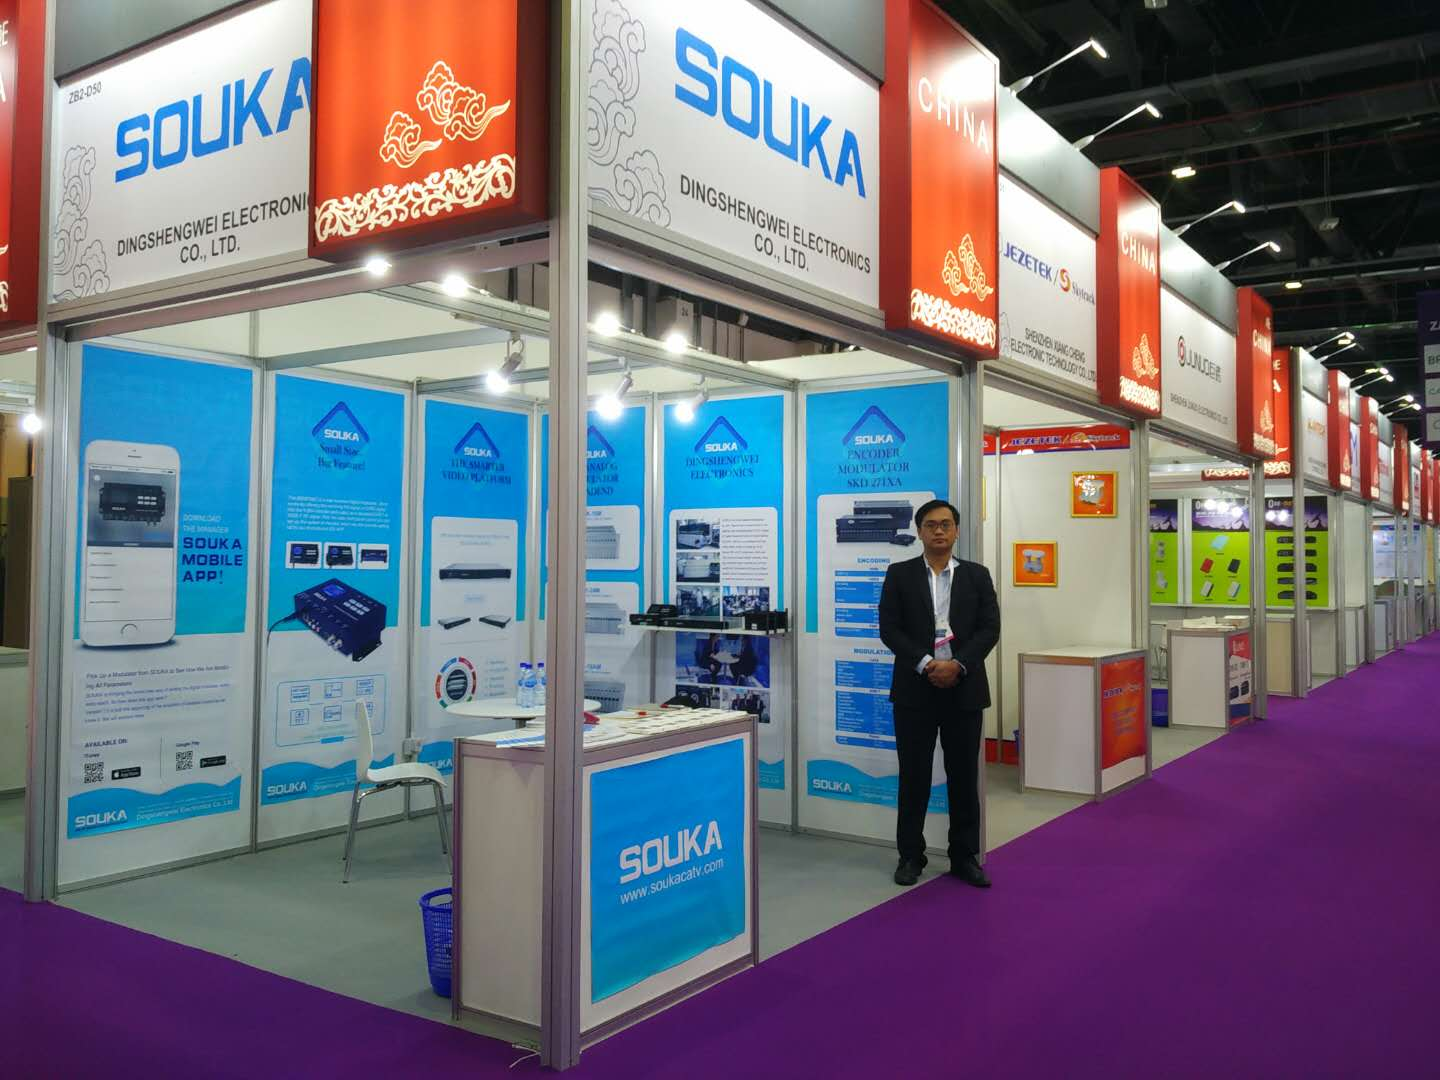 SOUKA's Booth in CABSAT